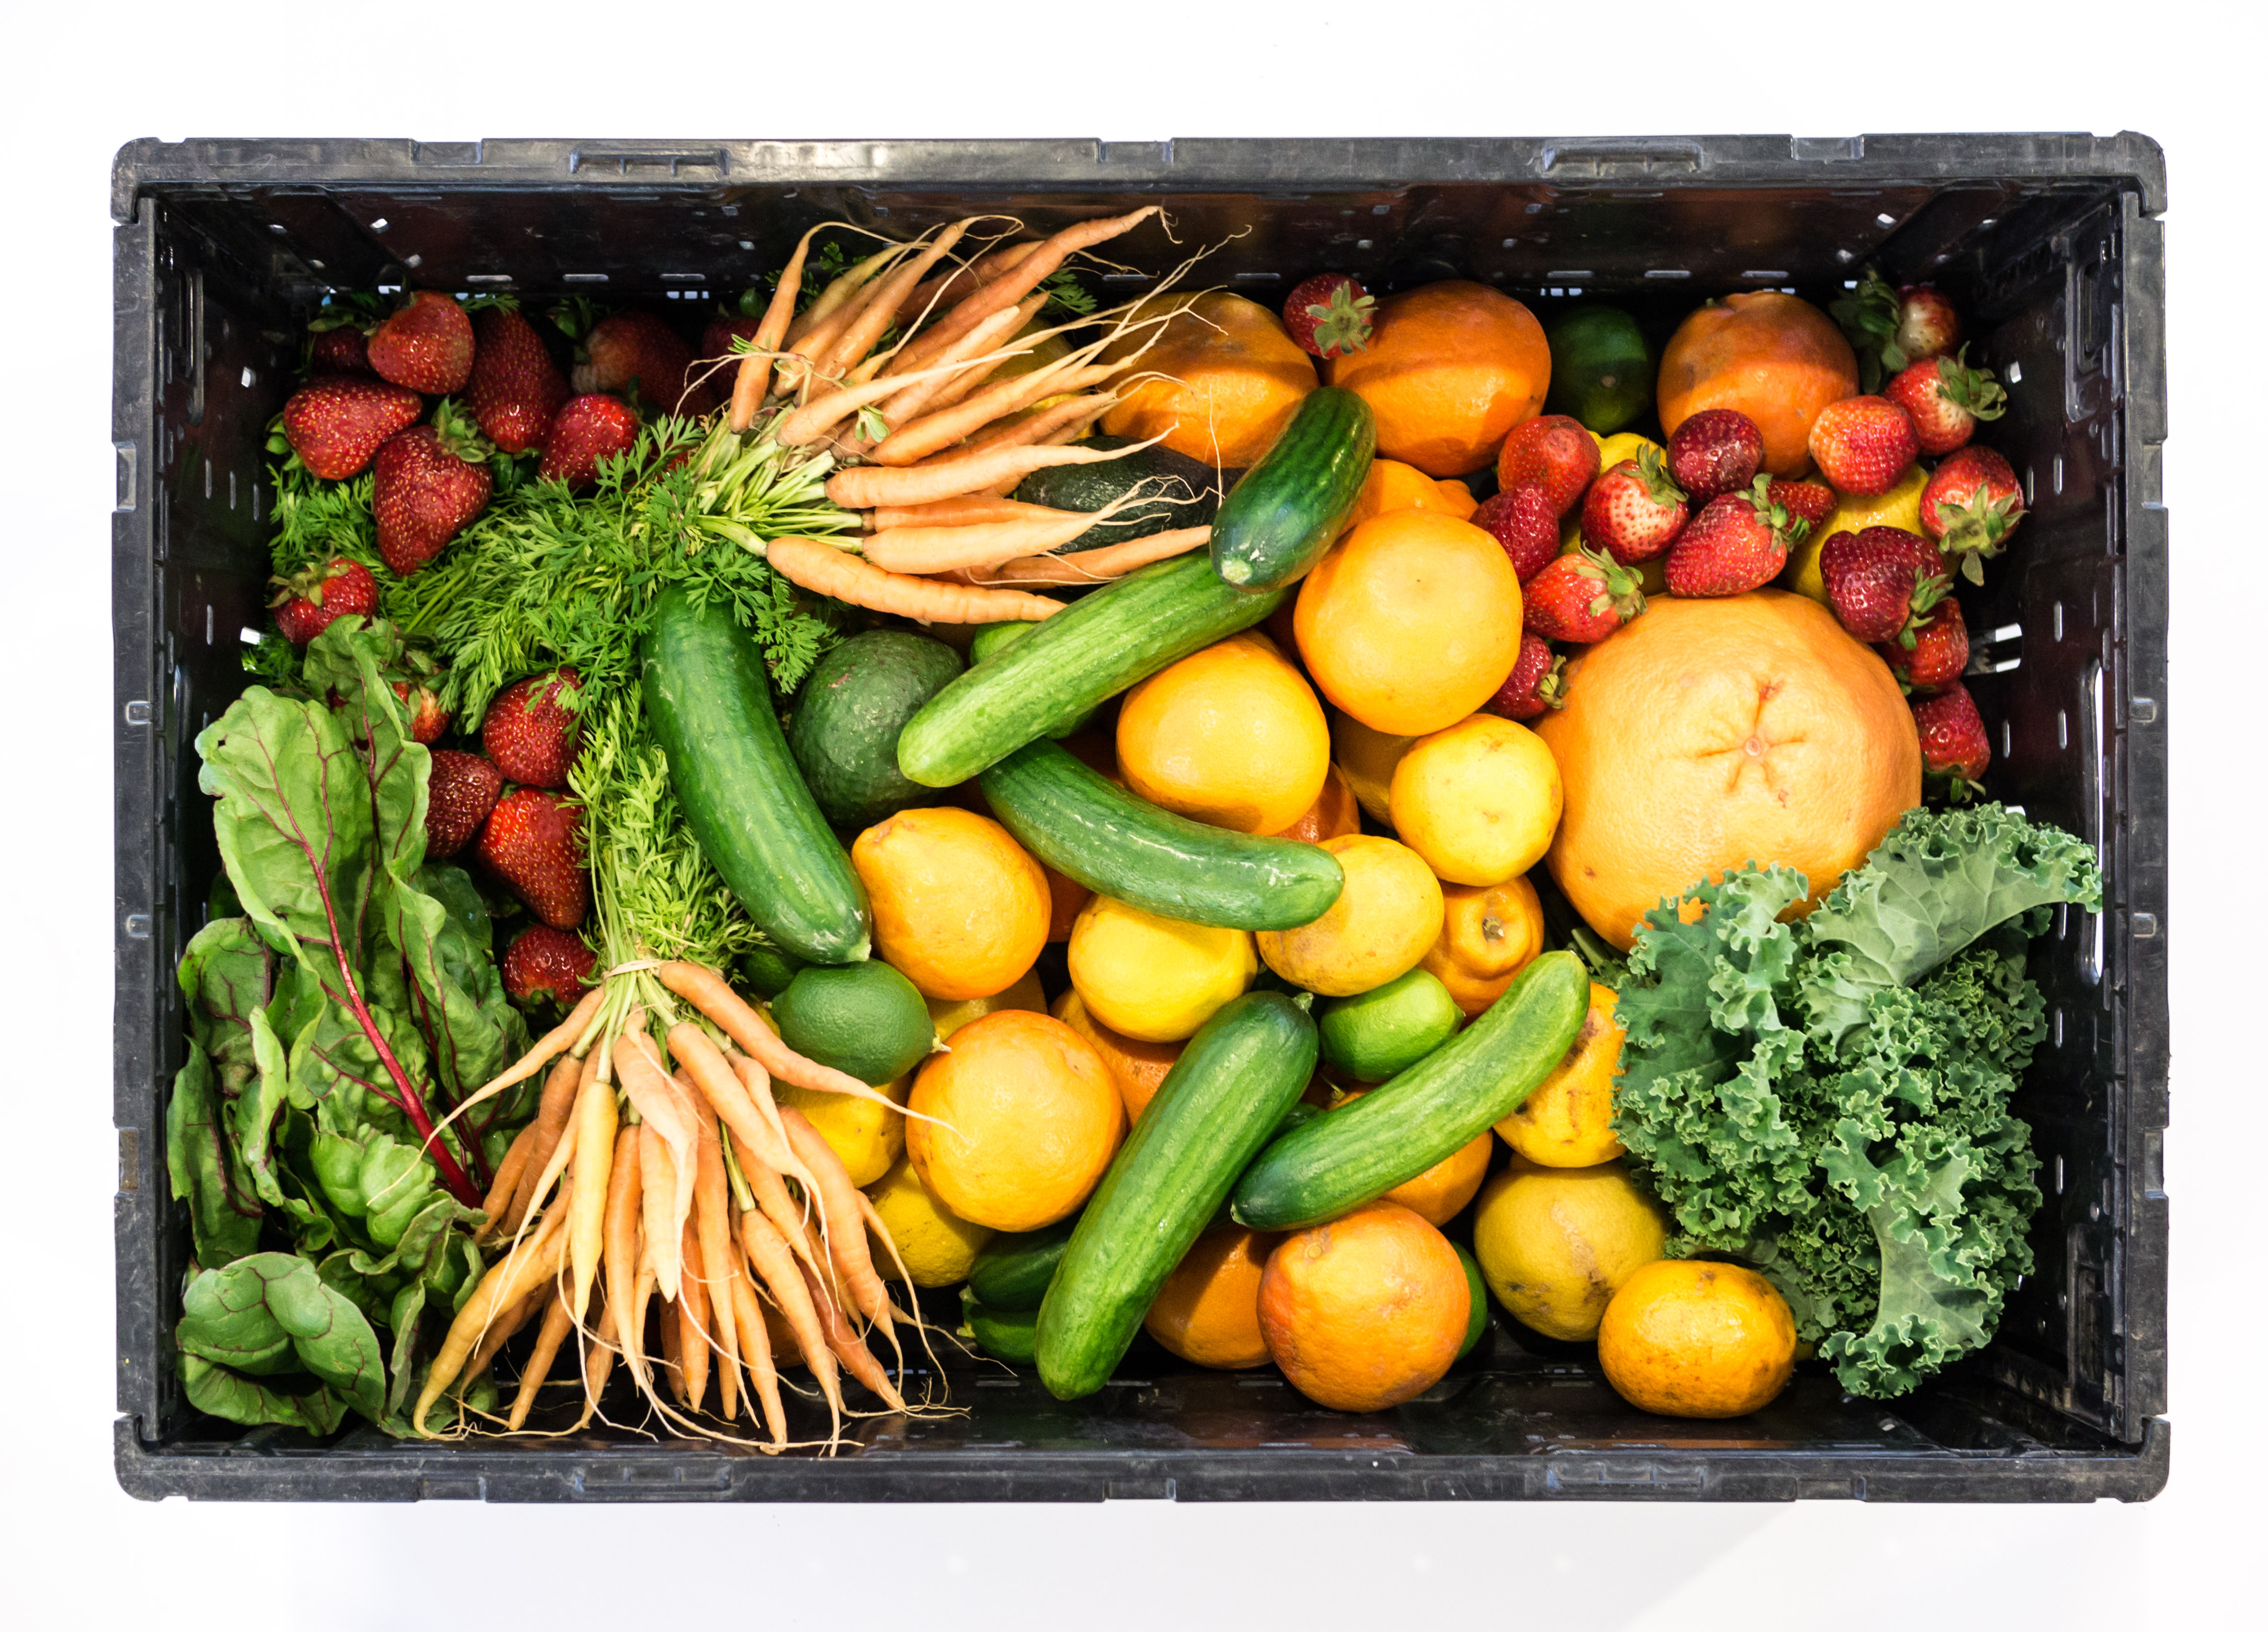 Arrangement of fruits and vegetables